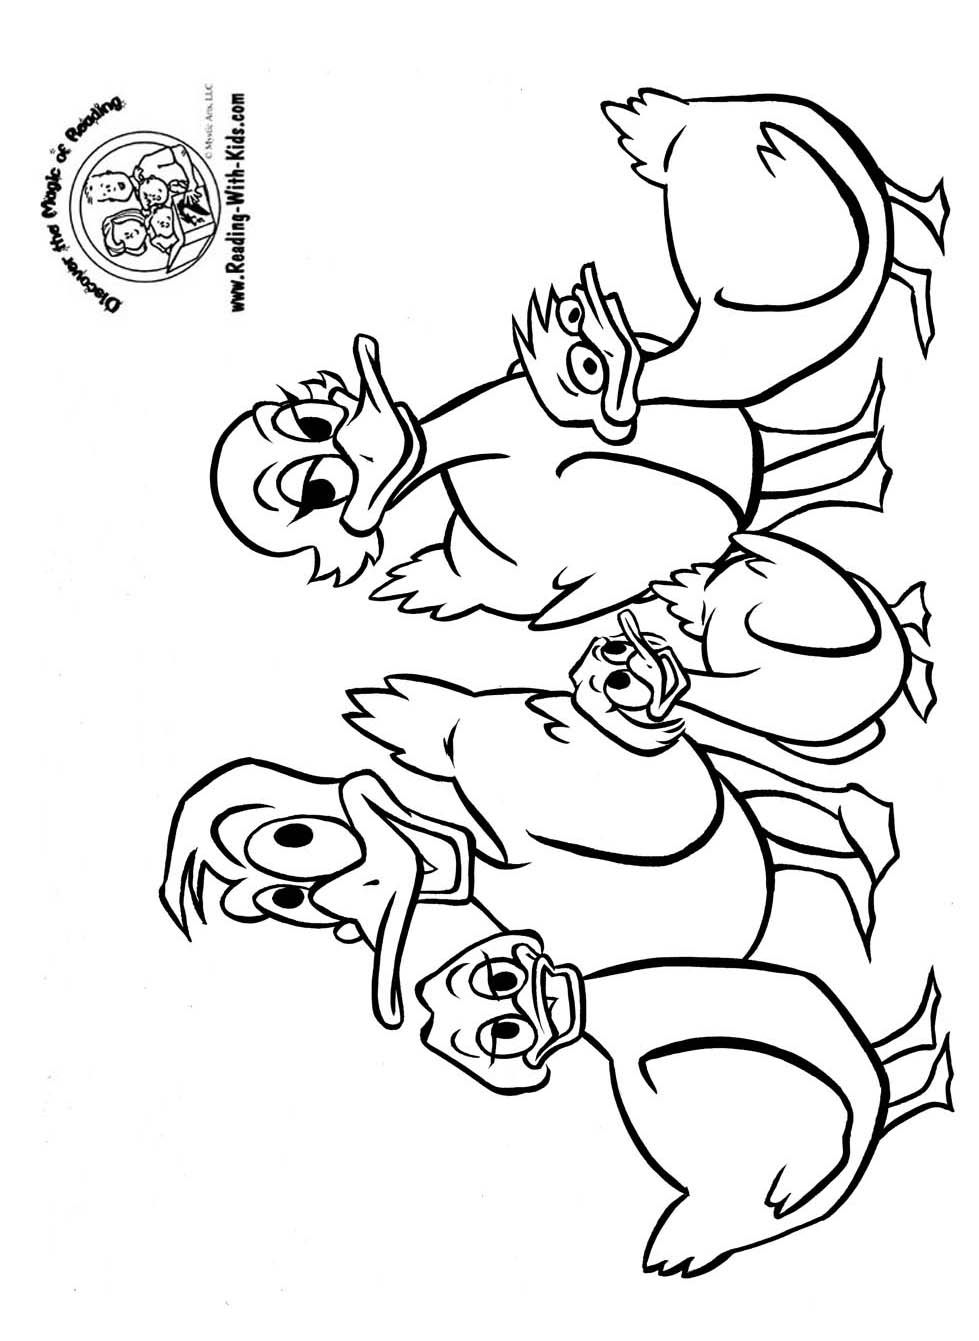 Five Little Ducks Coloring Page With Images Fox Coloring Page